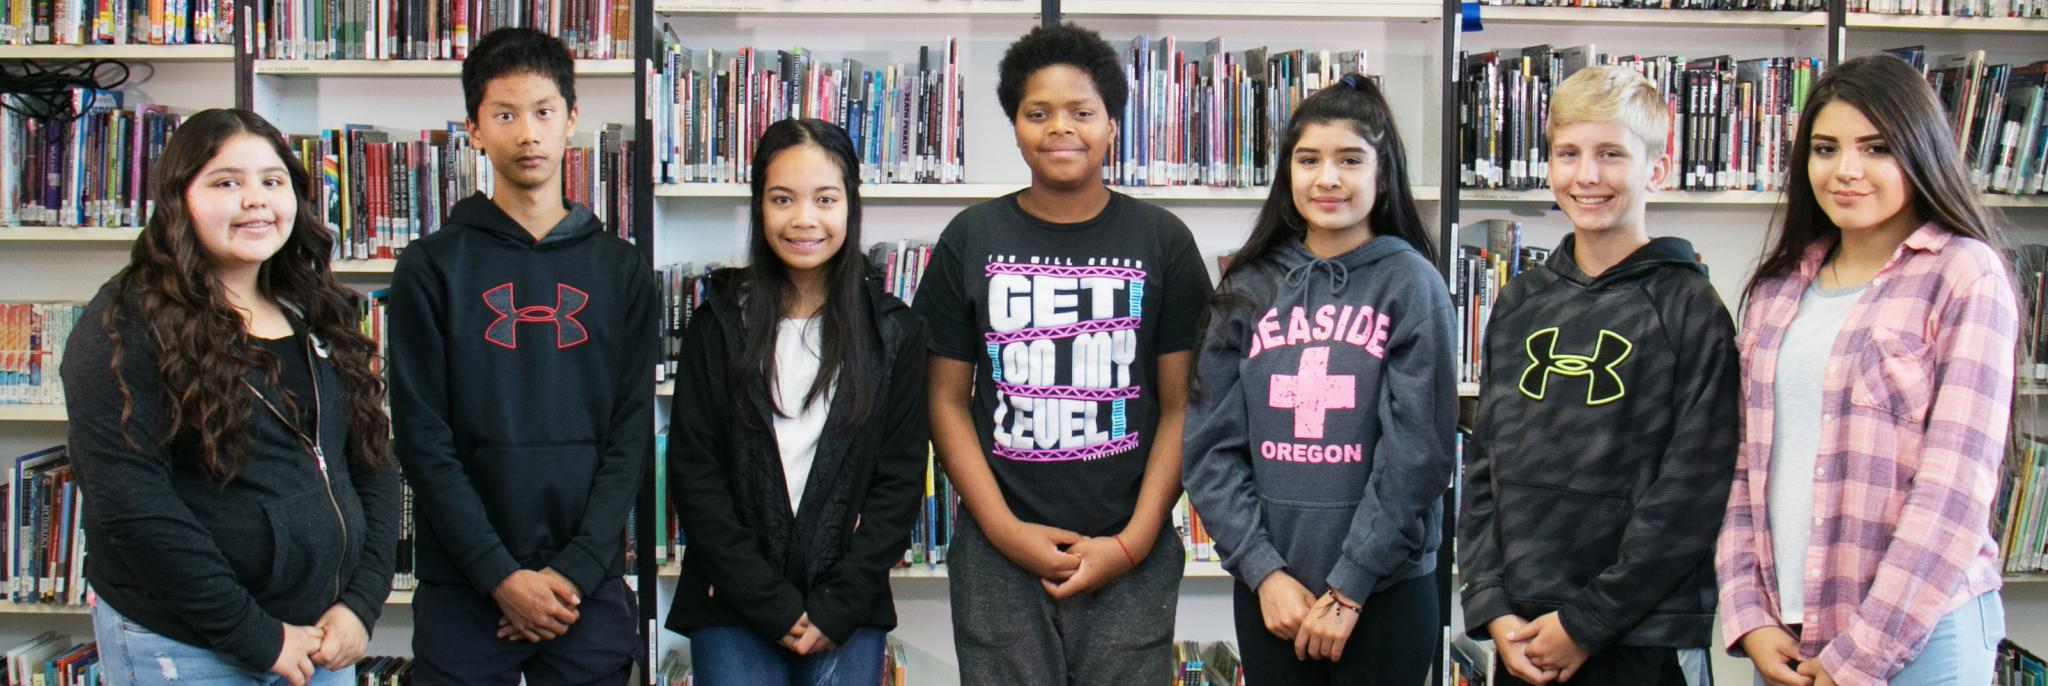 Salem-Keizer students in a library